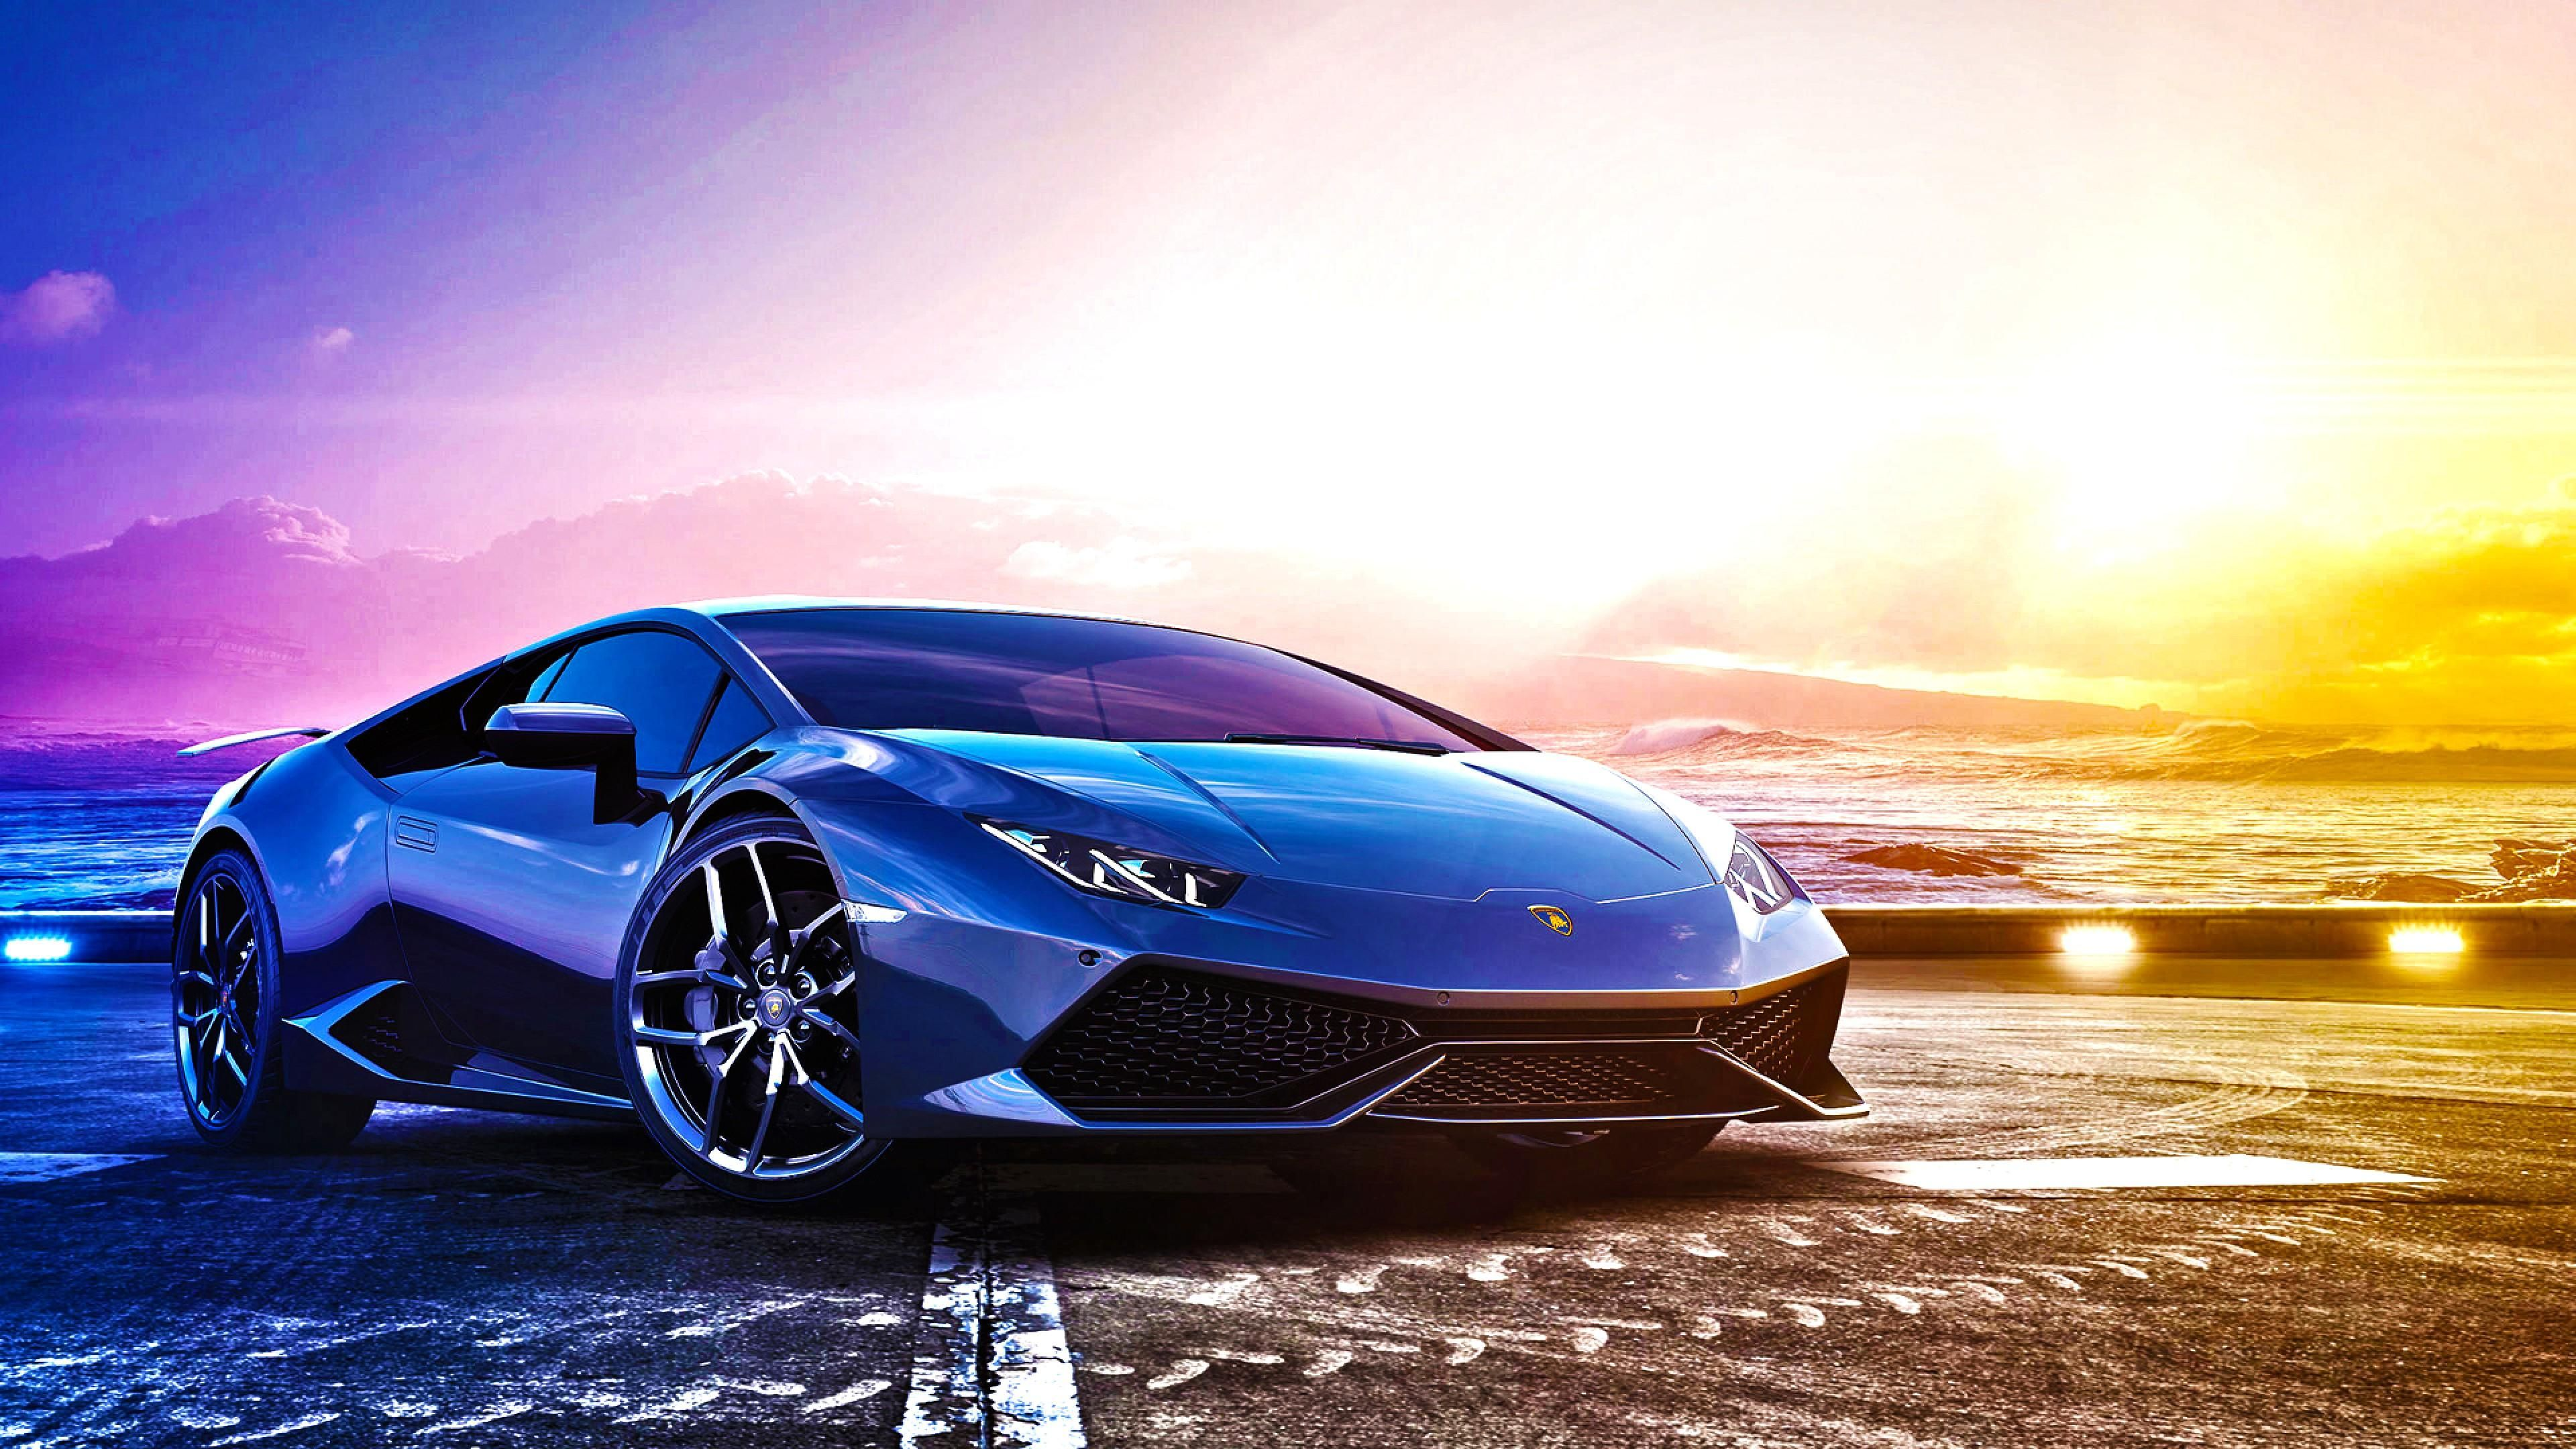 Blue Lamborghini Aventador 4k Wallpaper Lamborghini Wallpapers Lamborghini Aventador Wallpaper Lamborghini Aventador Wallpaper Lamborghini Pictures Super Cars